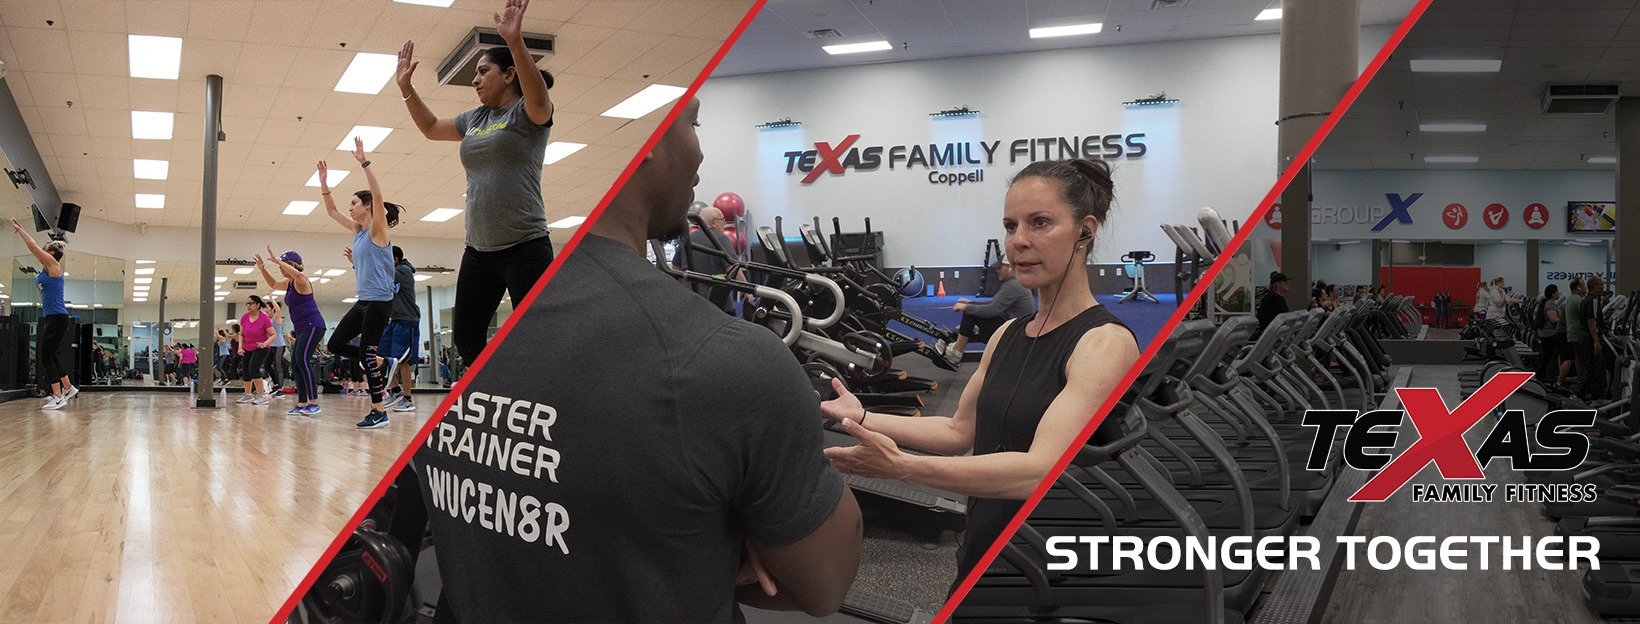 Texas Family Fitness reviews | 120 S Denton Tap Rd - Coppell TX